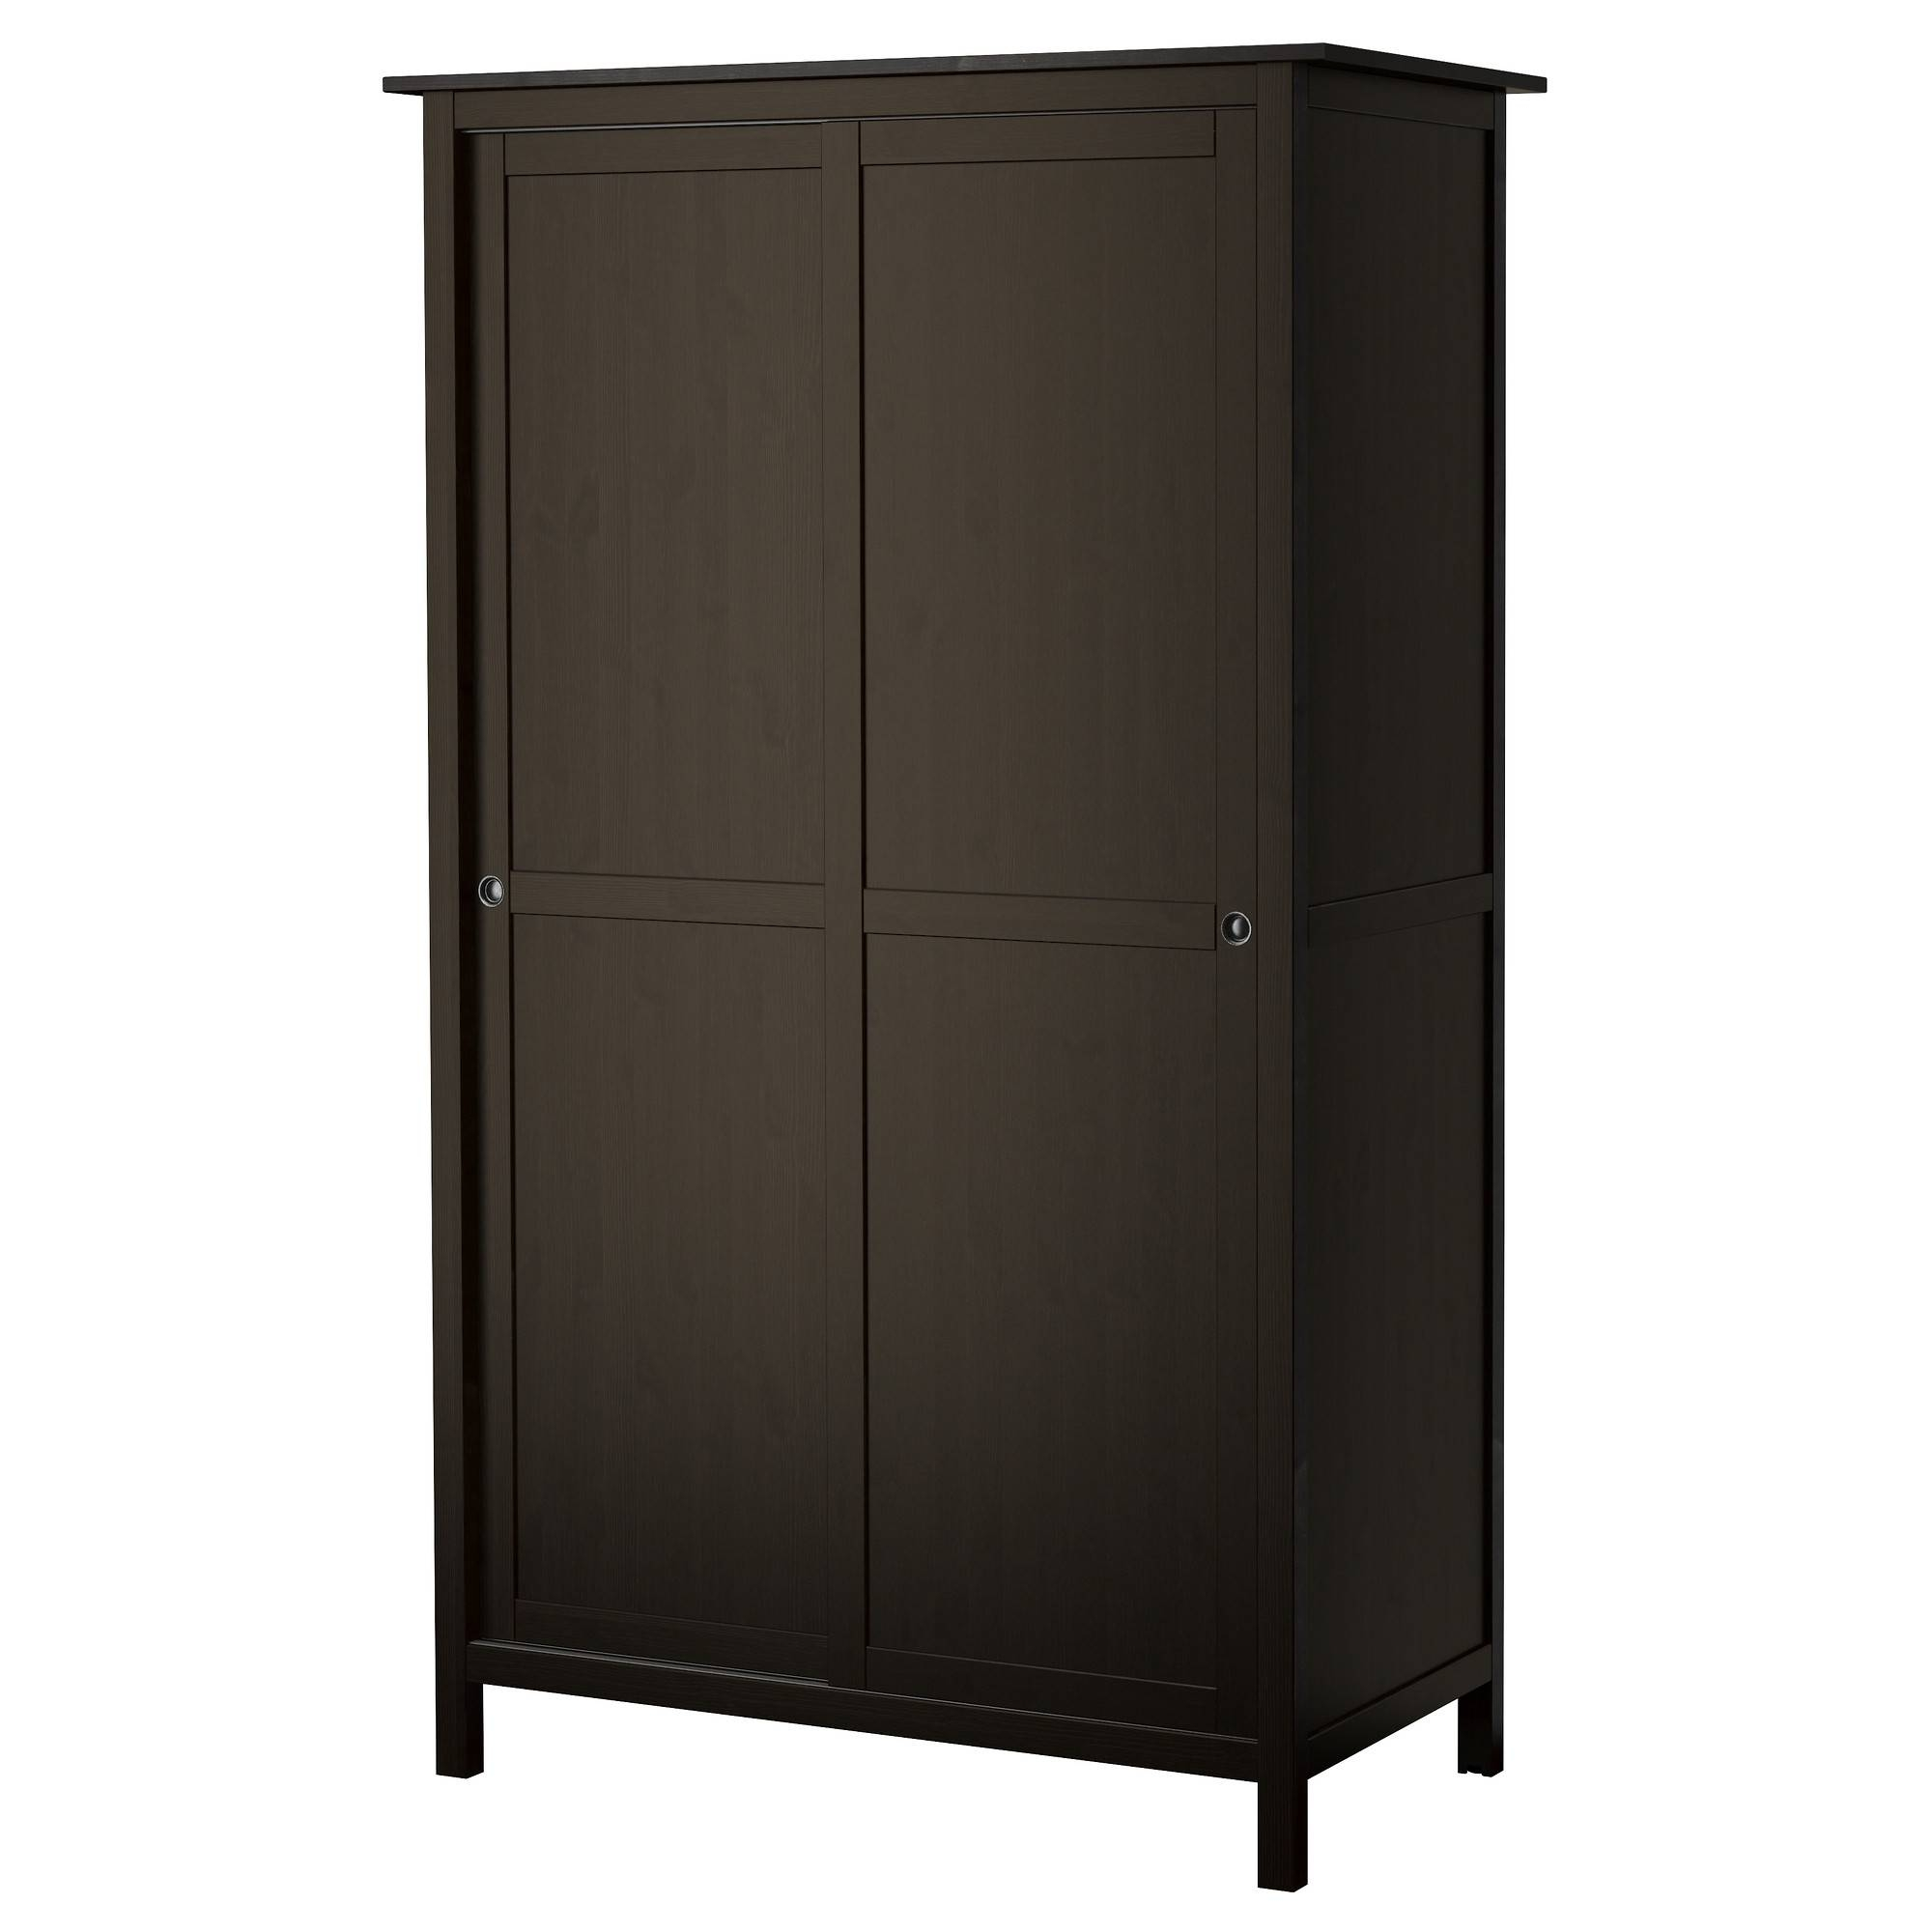 Wardrobes, Armoires & Closets - Ikea inside Dark Wood Wardrobe Sliding Doors (Image 29 of 30)